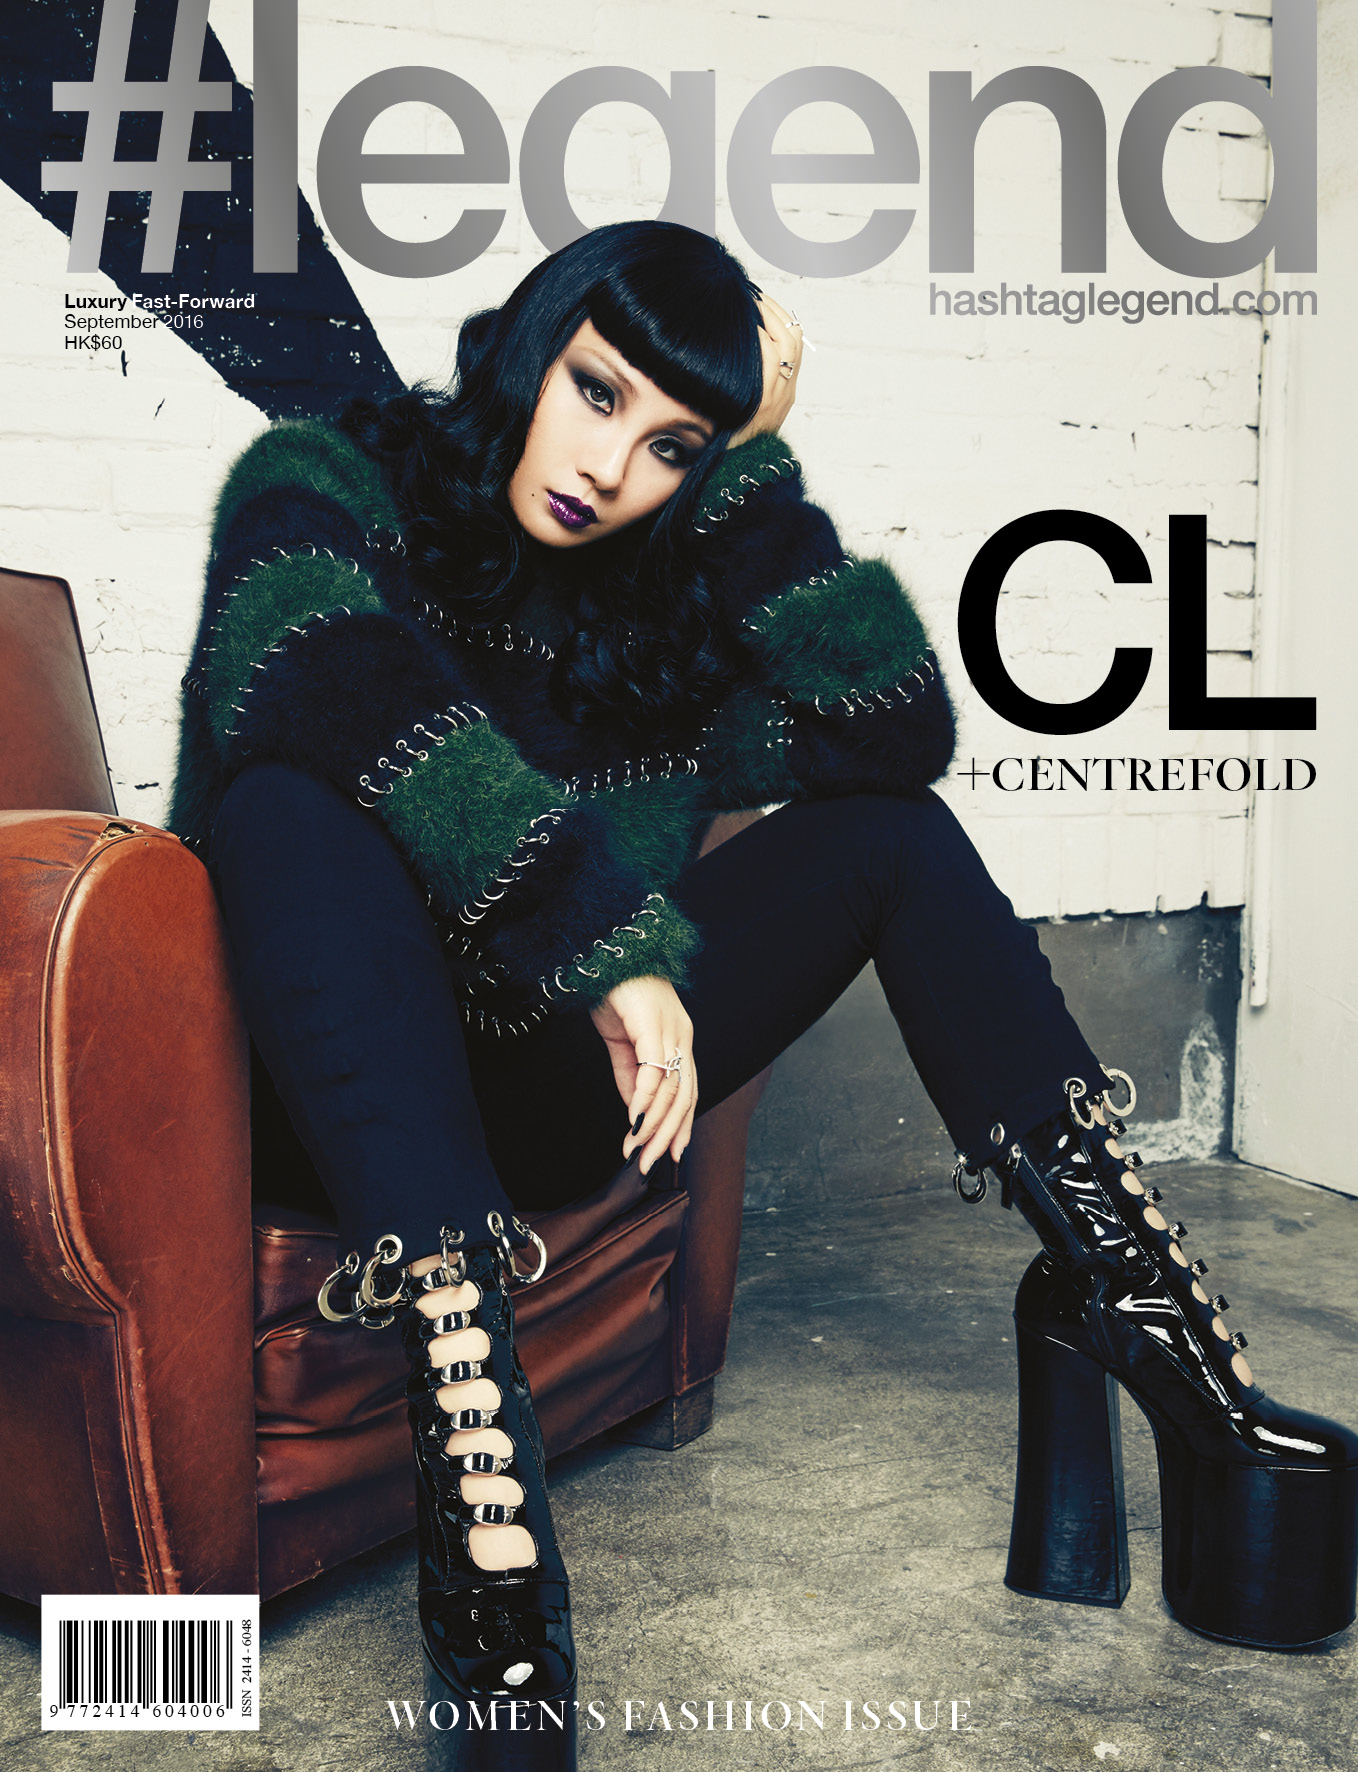 CL hashtag legend magazine 3